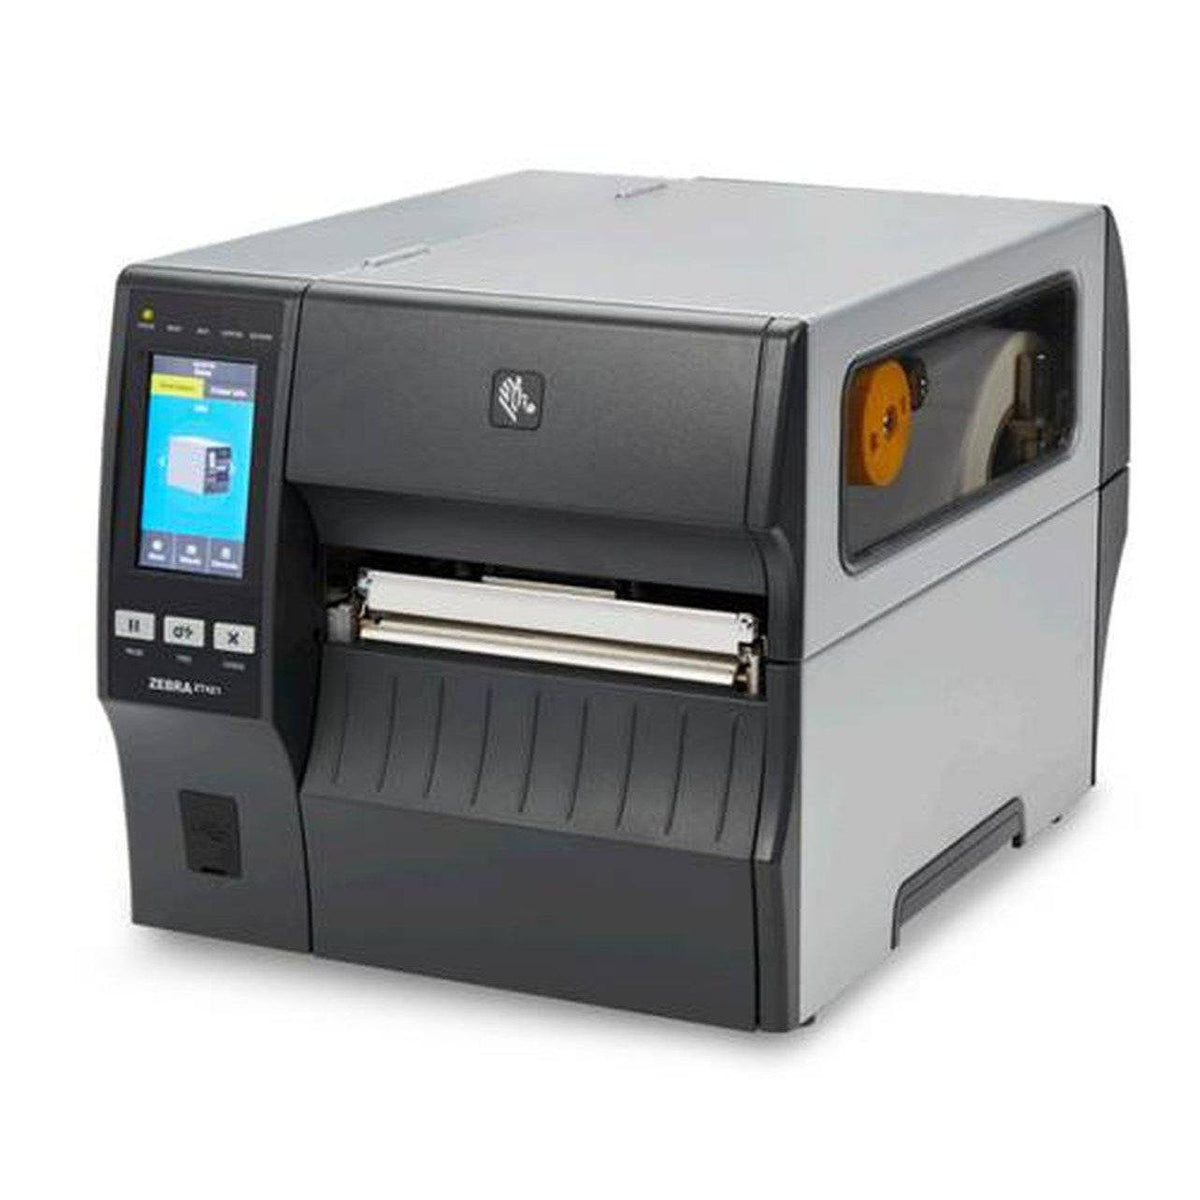 Zebra ZT421 DT / TT Label Printer 203DPI Bluetooth, Ethernet, USB | ZT42162-T0E00C0Z Label Printer Zebra